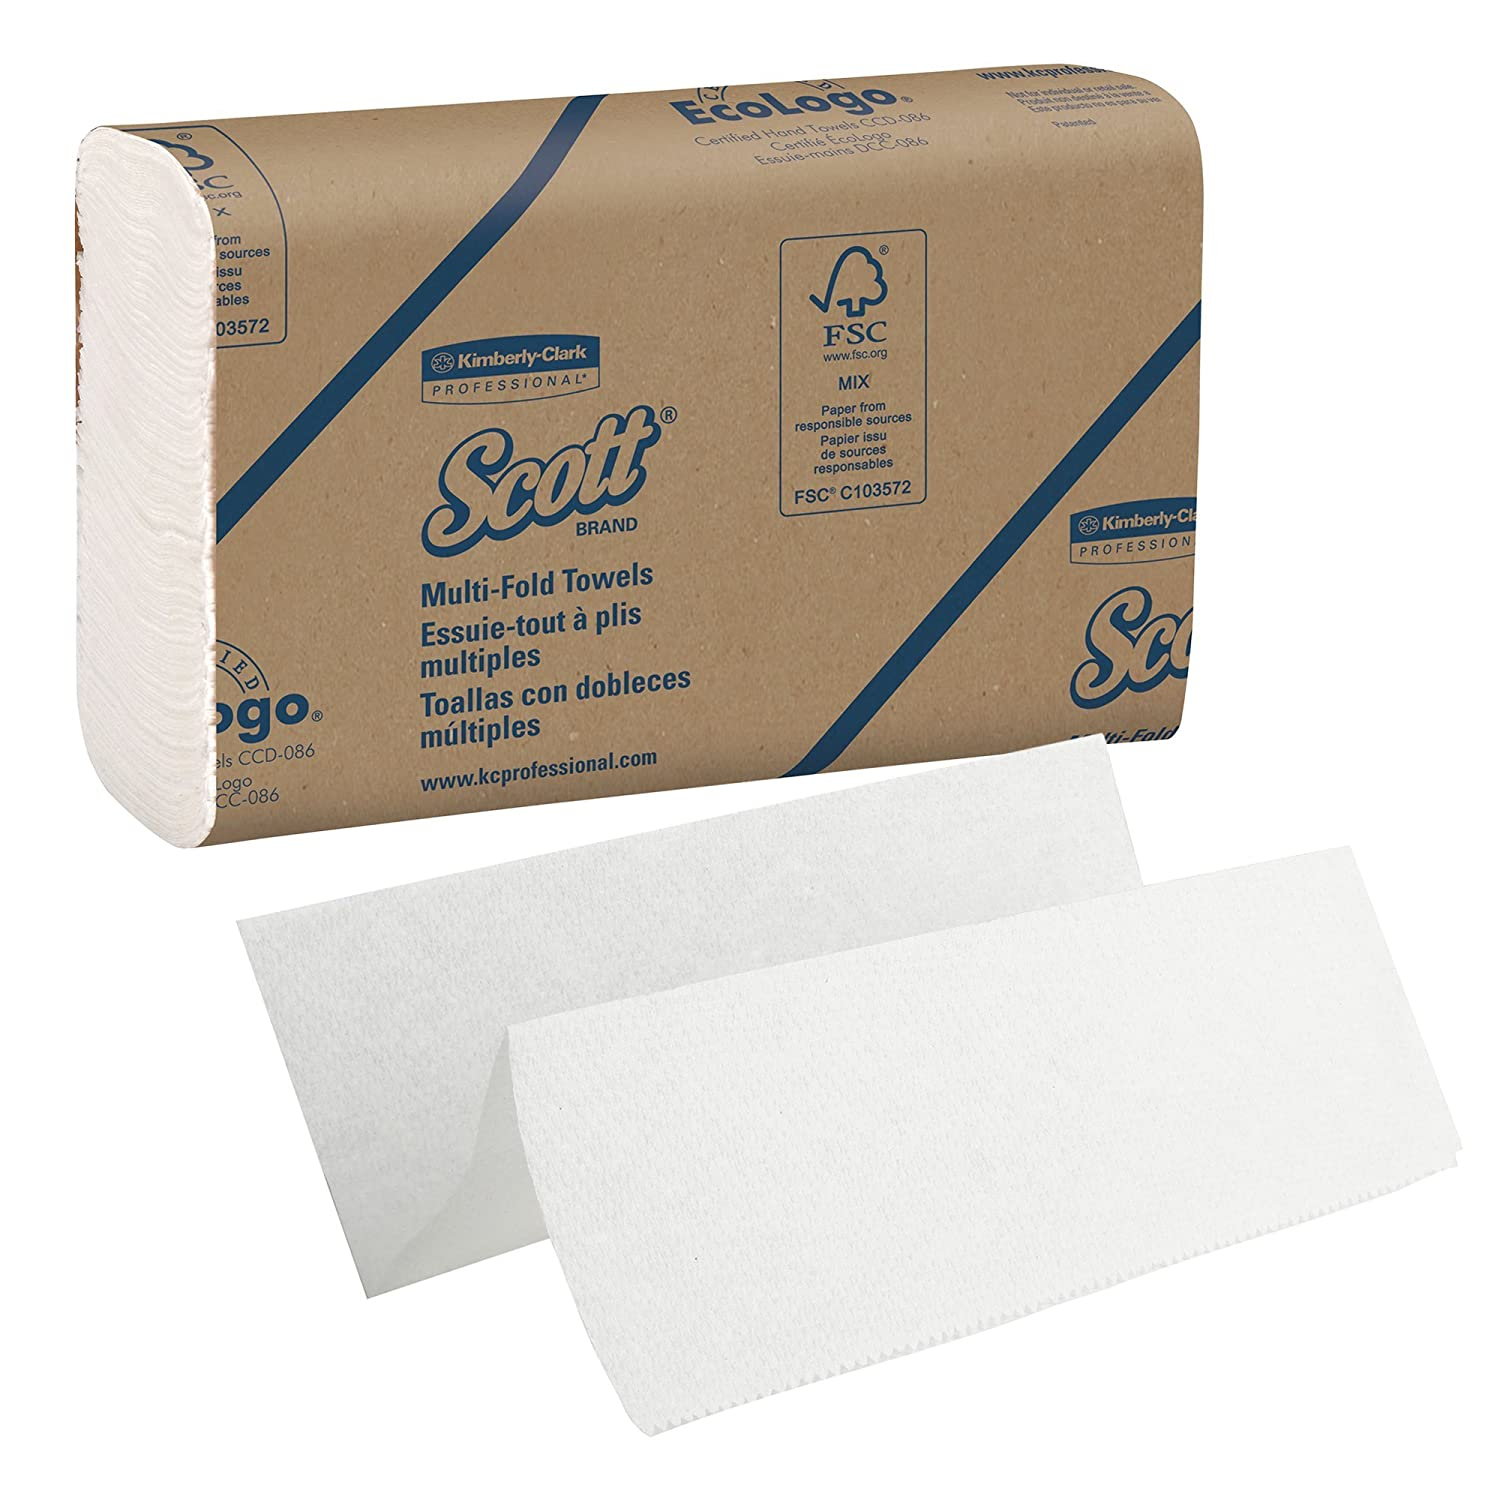 Amazon.com: Scott 03650 Multi-Fold Towels, Absorbency Pockets, 9 2/5 x 9 1/5, White, 250 Sheets Per Pack (Case of 12 Packs), 2 Case: Health & Personal Care